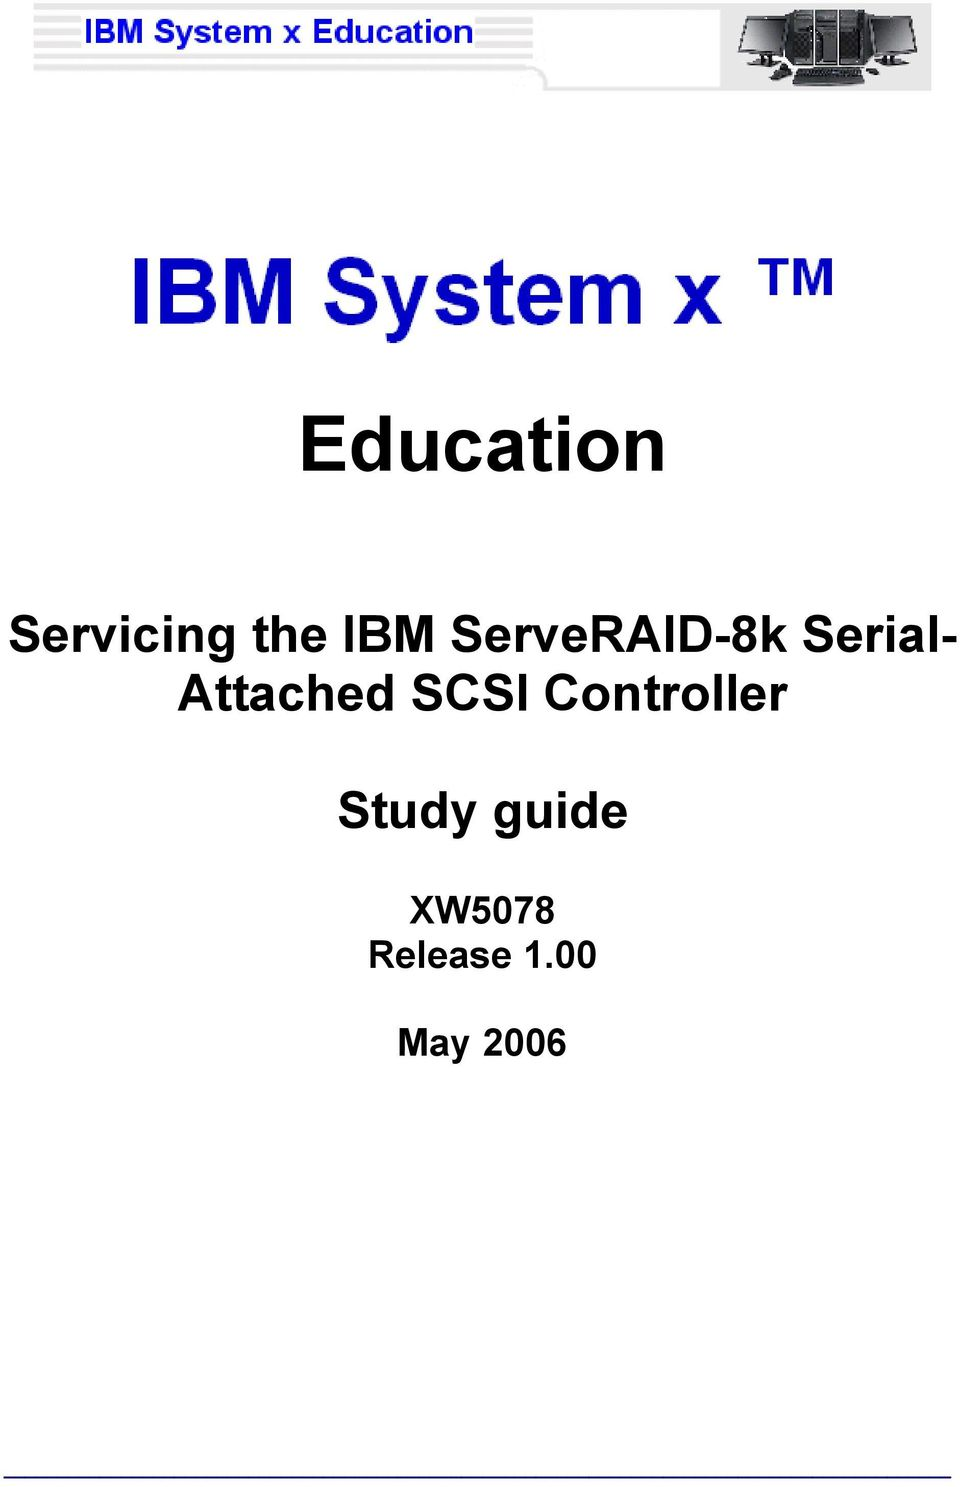 Attached SCSI Controller